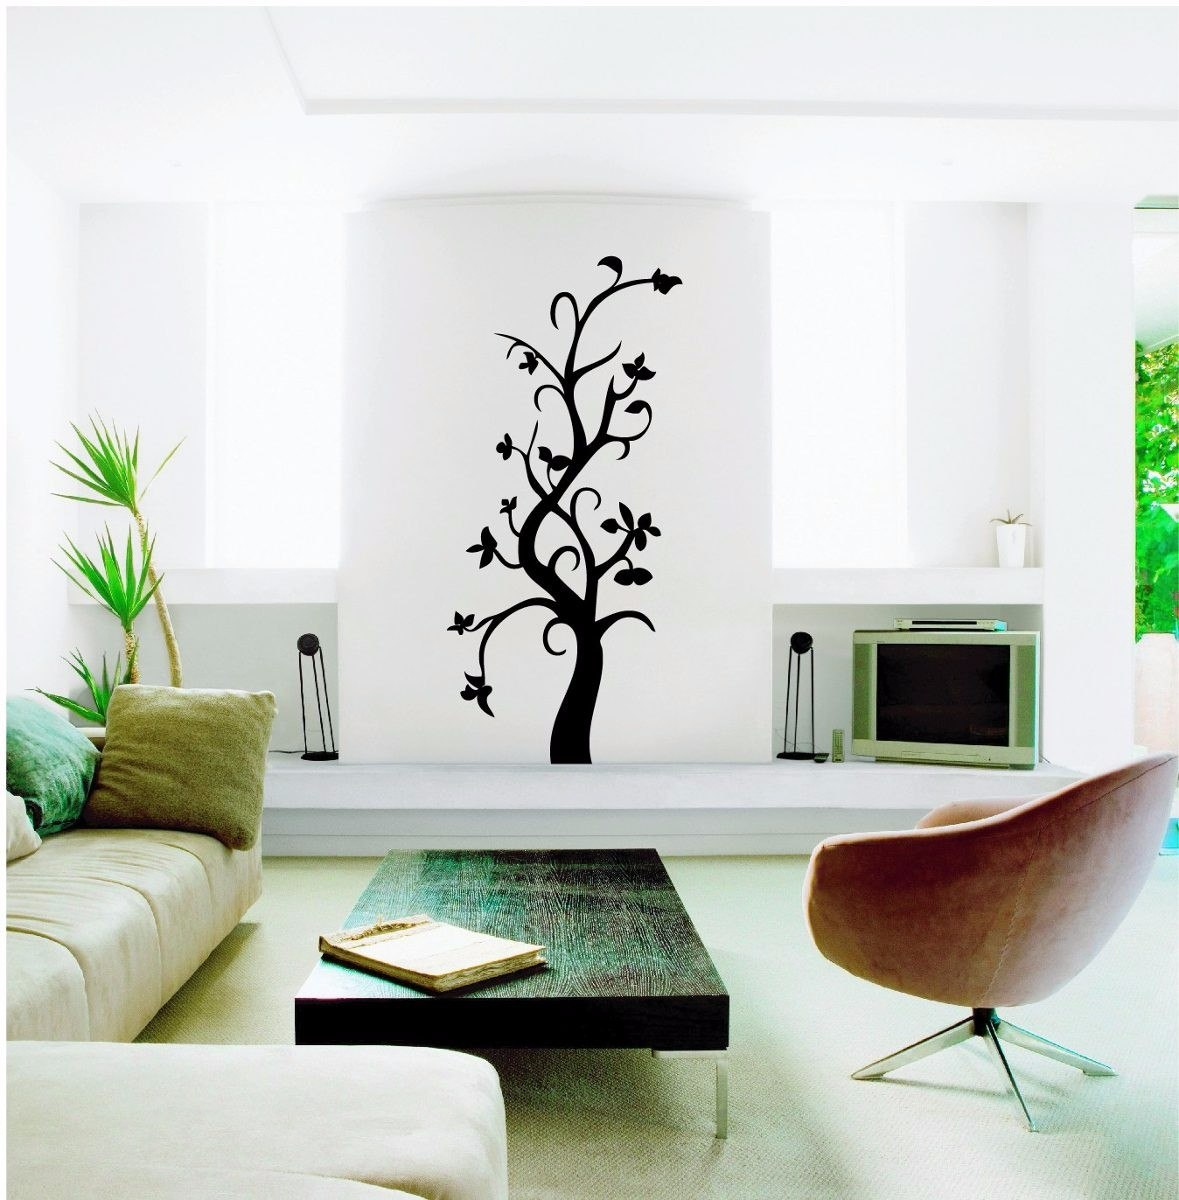 Vinilo decorativo dise o arbol decoracion pared floral for Diseno de vinilos decorativos